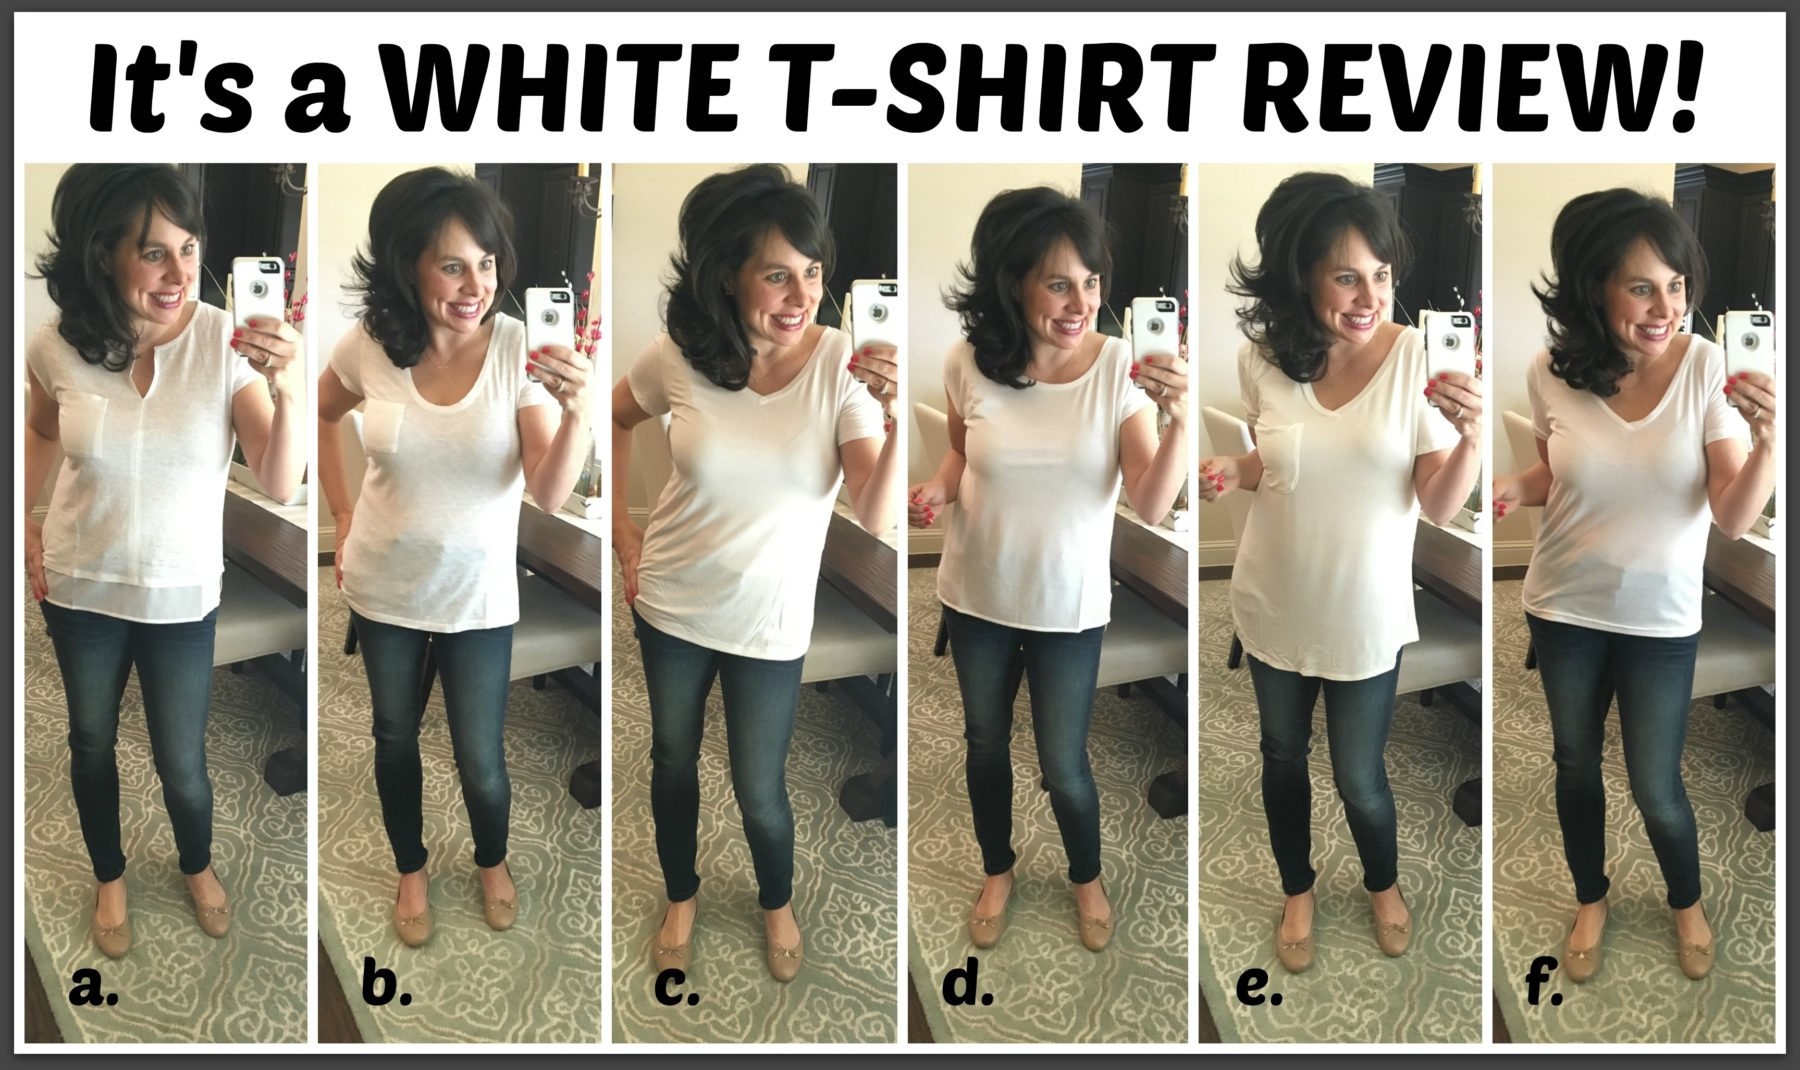 white t-shirt review 1